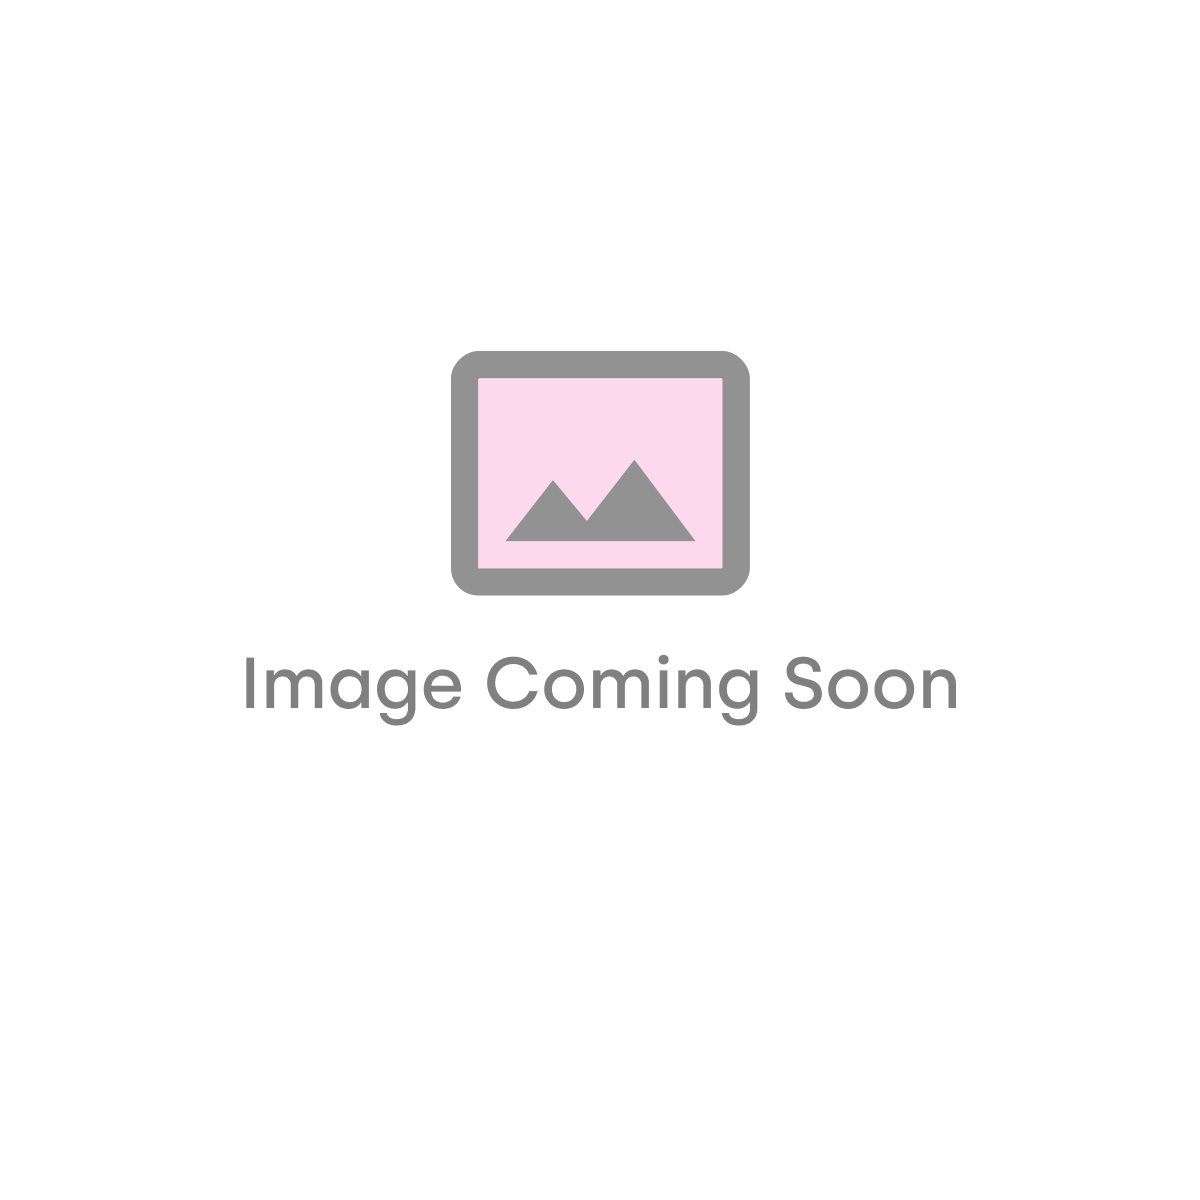 Eliseo Ricci Ruby Basin Mixer Tap inc. Waste - 8503